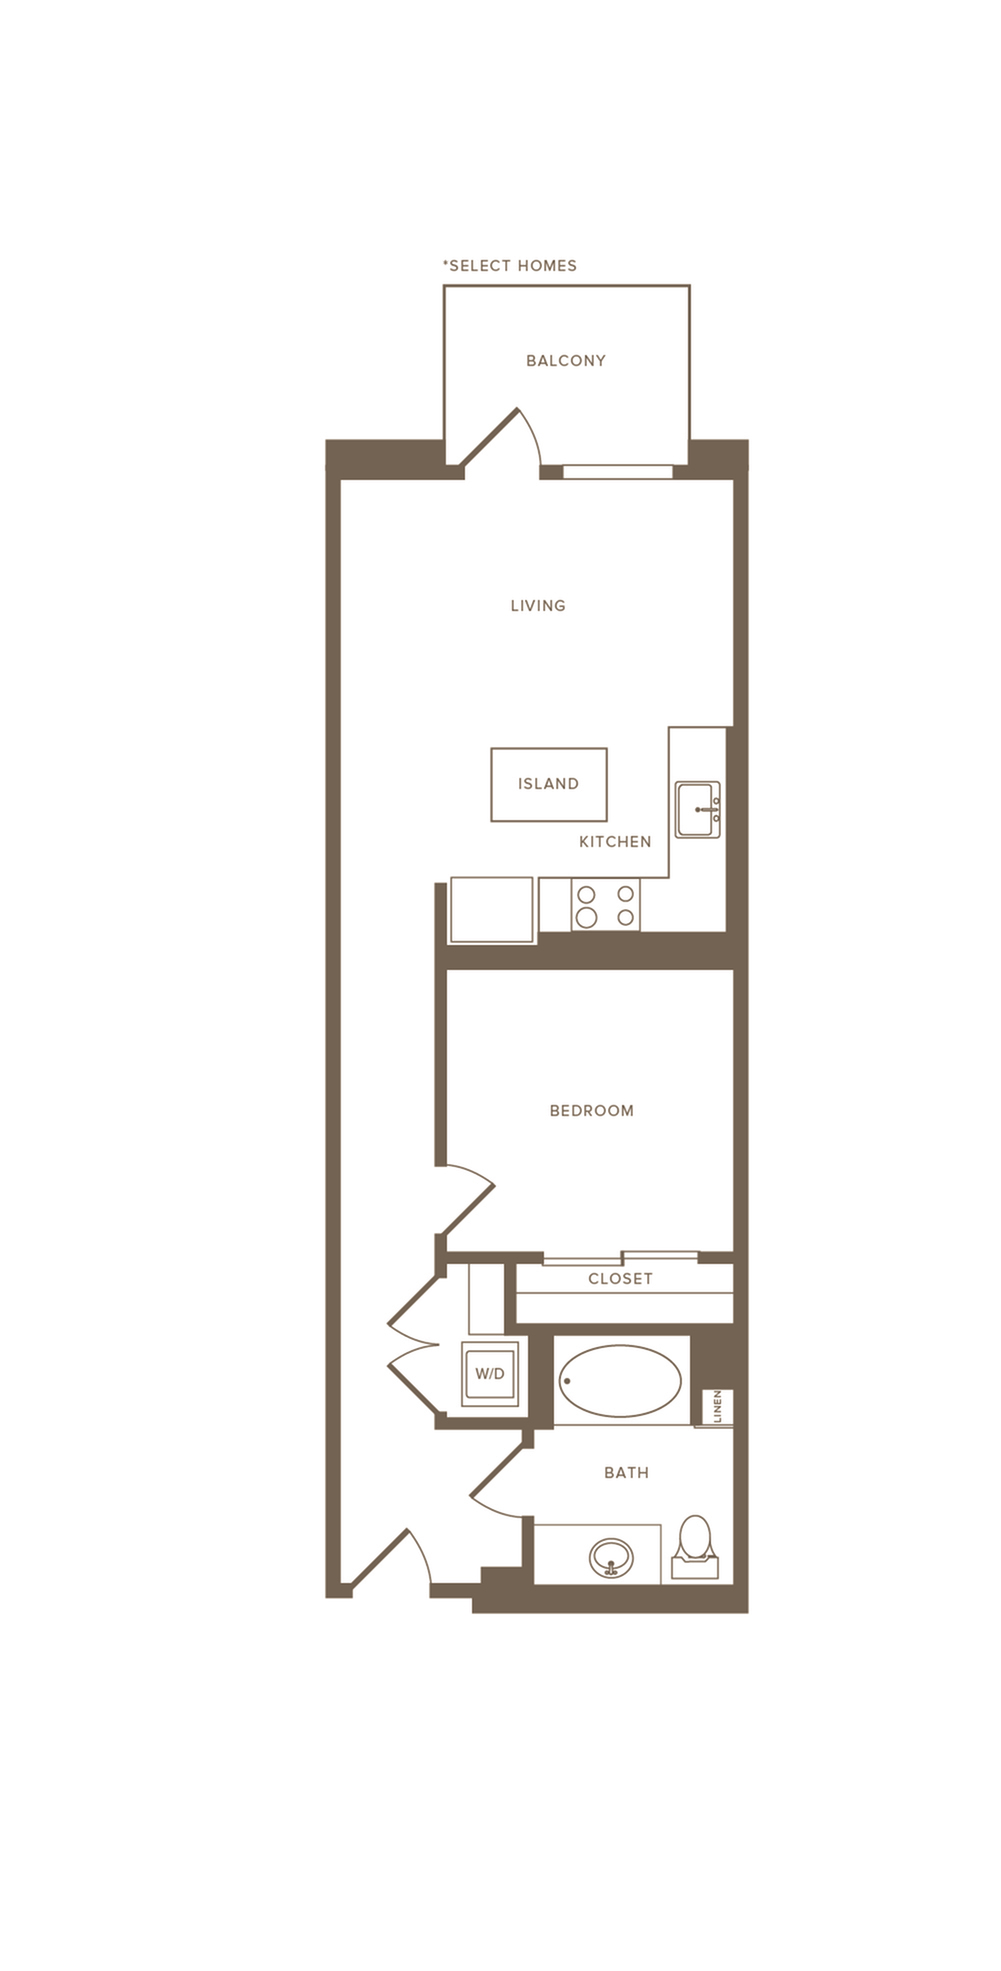 630-675 square foot one bedroom one bath floor plan image